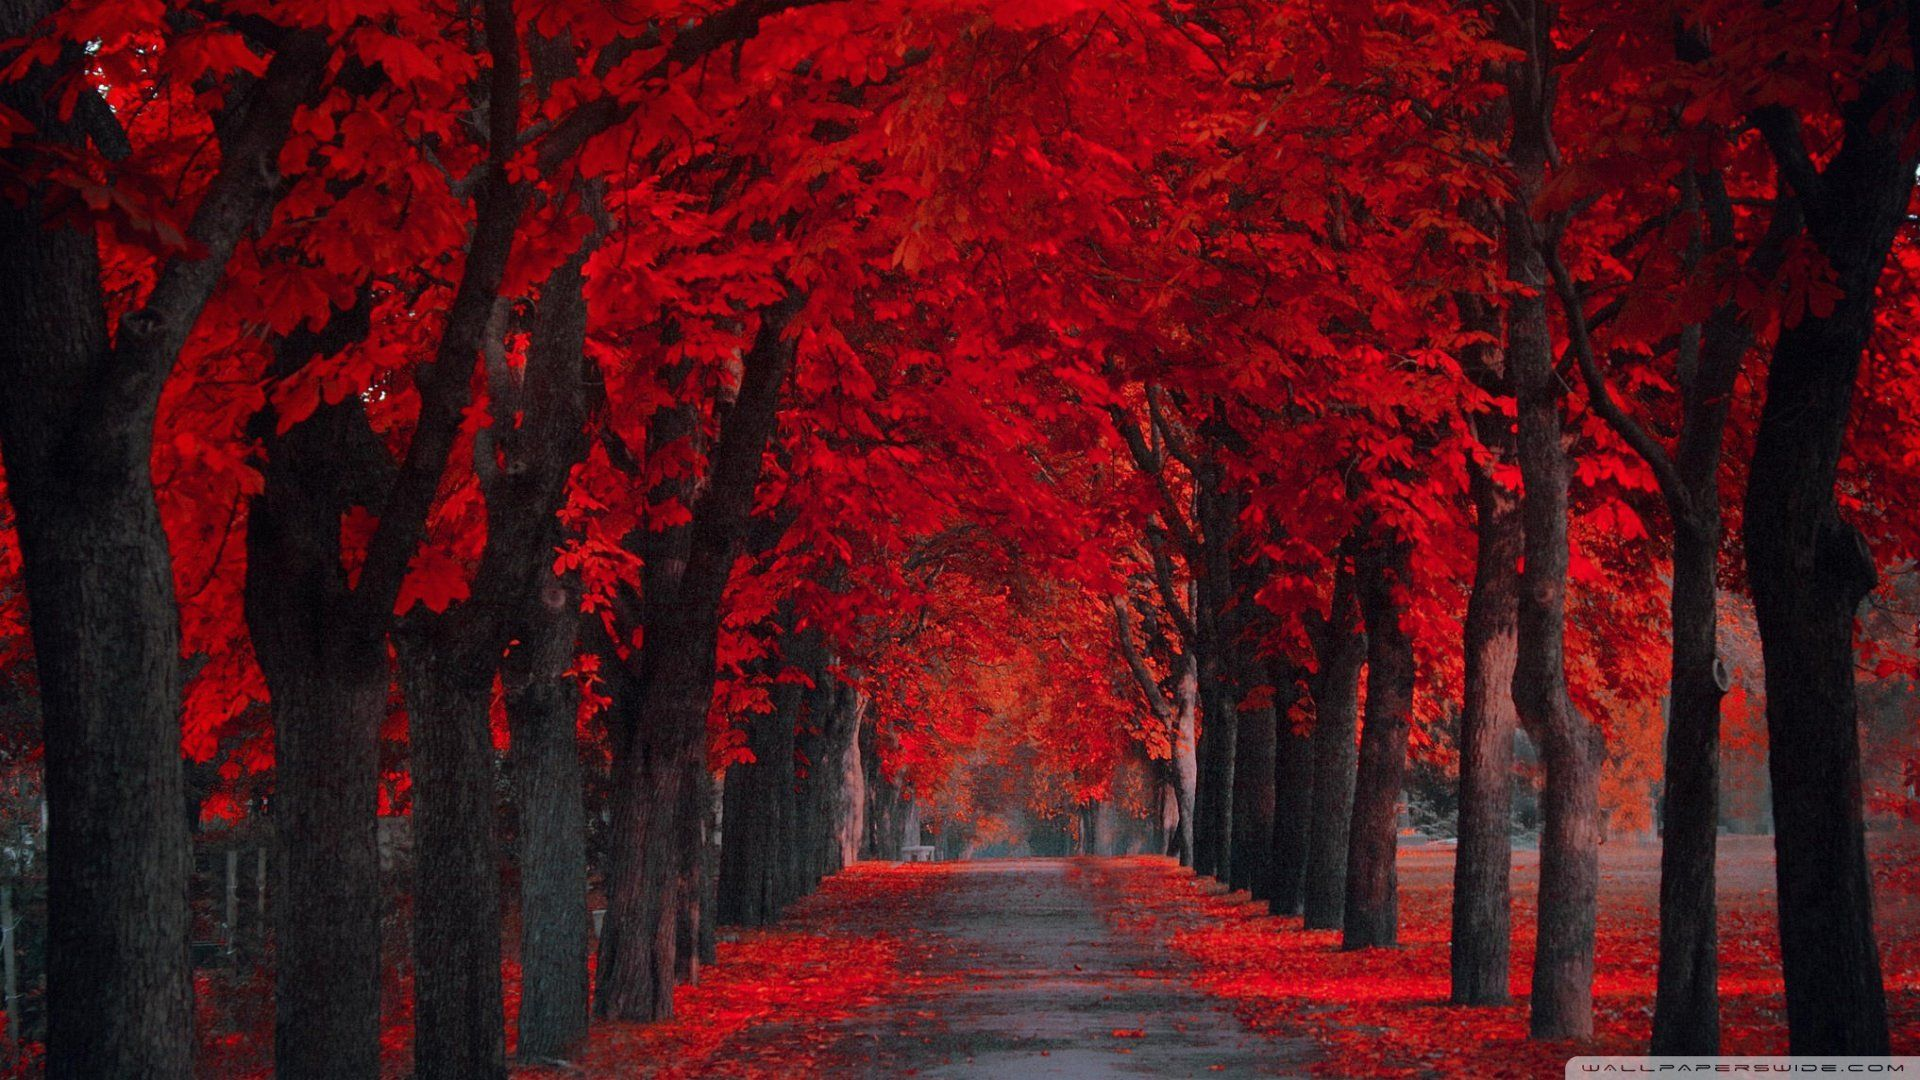 Download Red Fall Leaves Wallpaper Desktop Background Y896d Ahuhah Com Autumn Leaves Wallpaper Red Wallpaper Fall Wallpaper